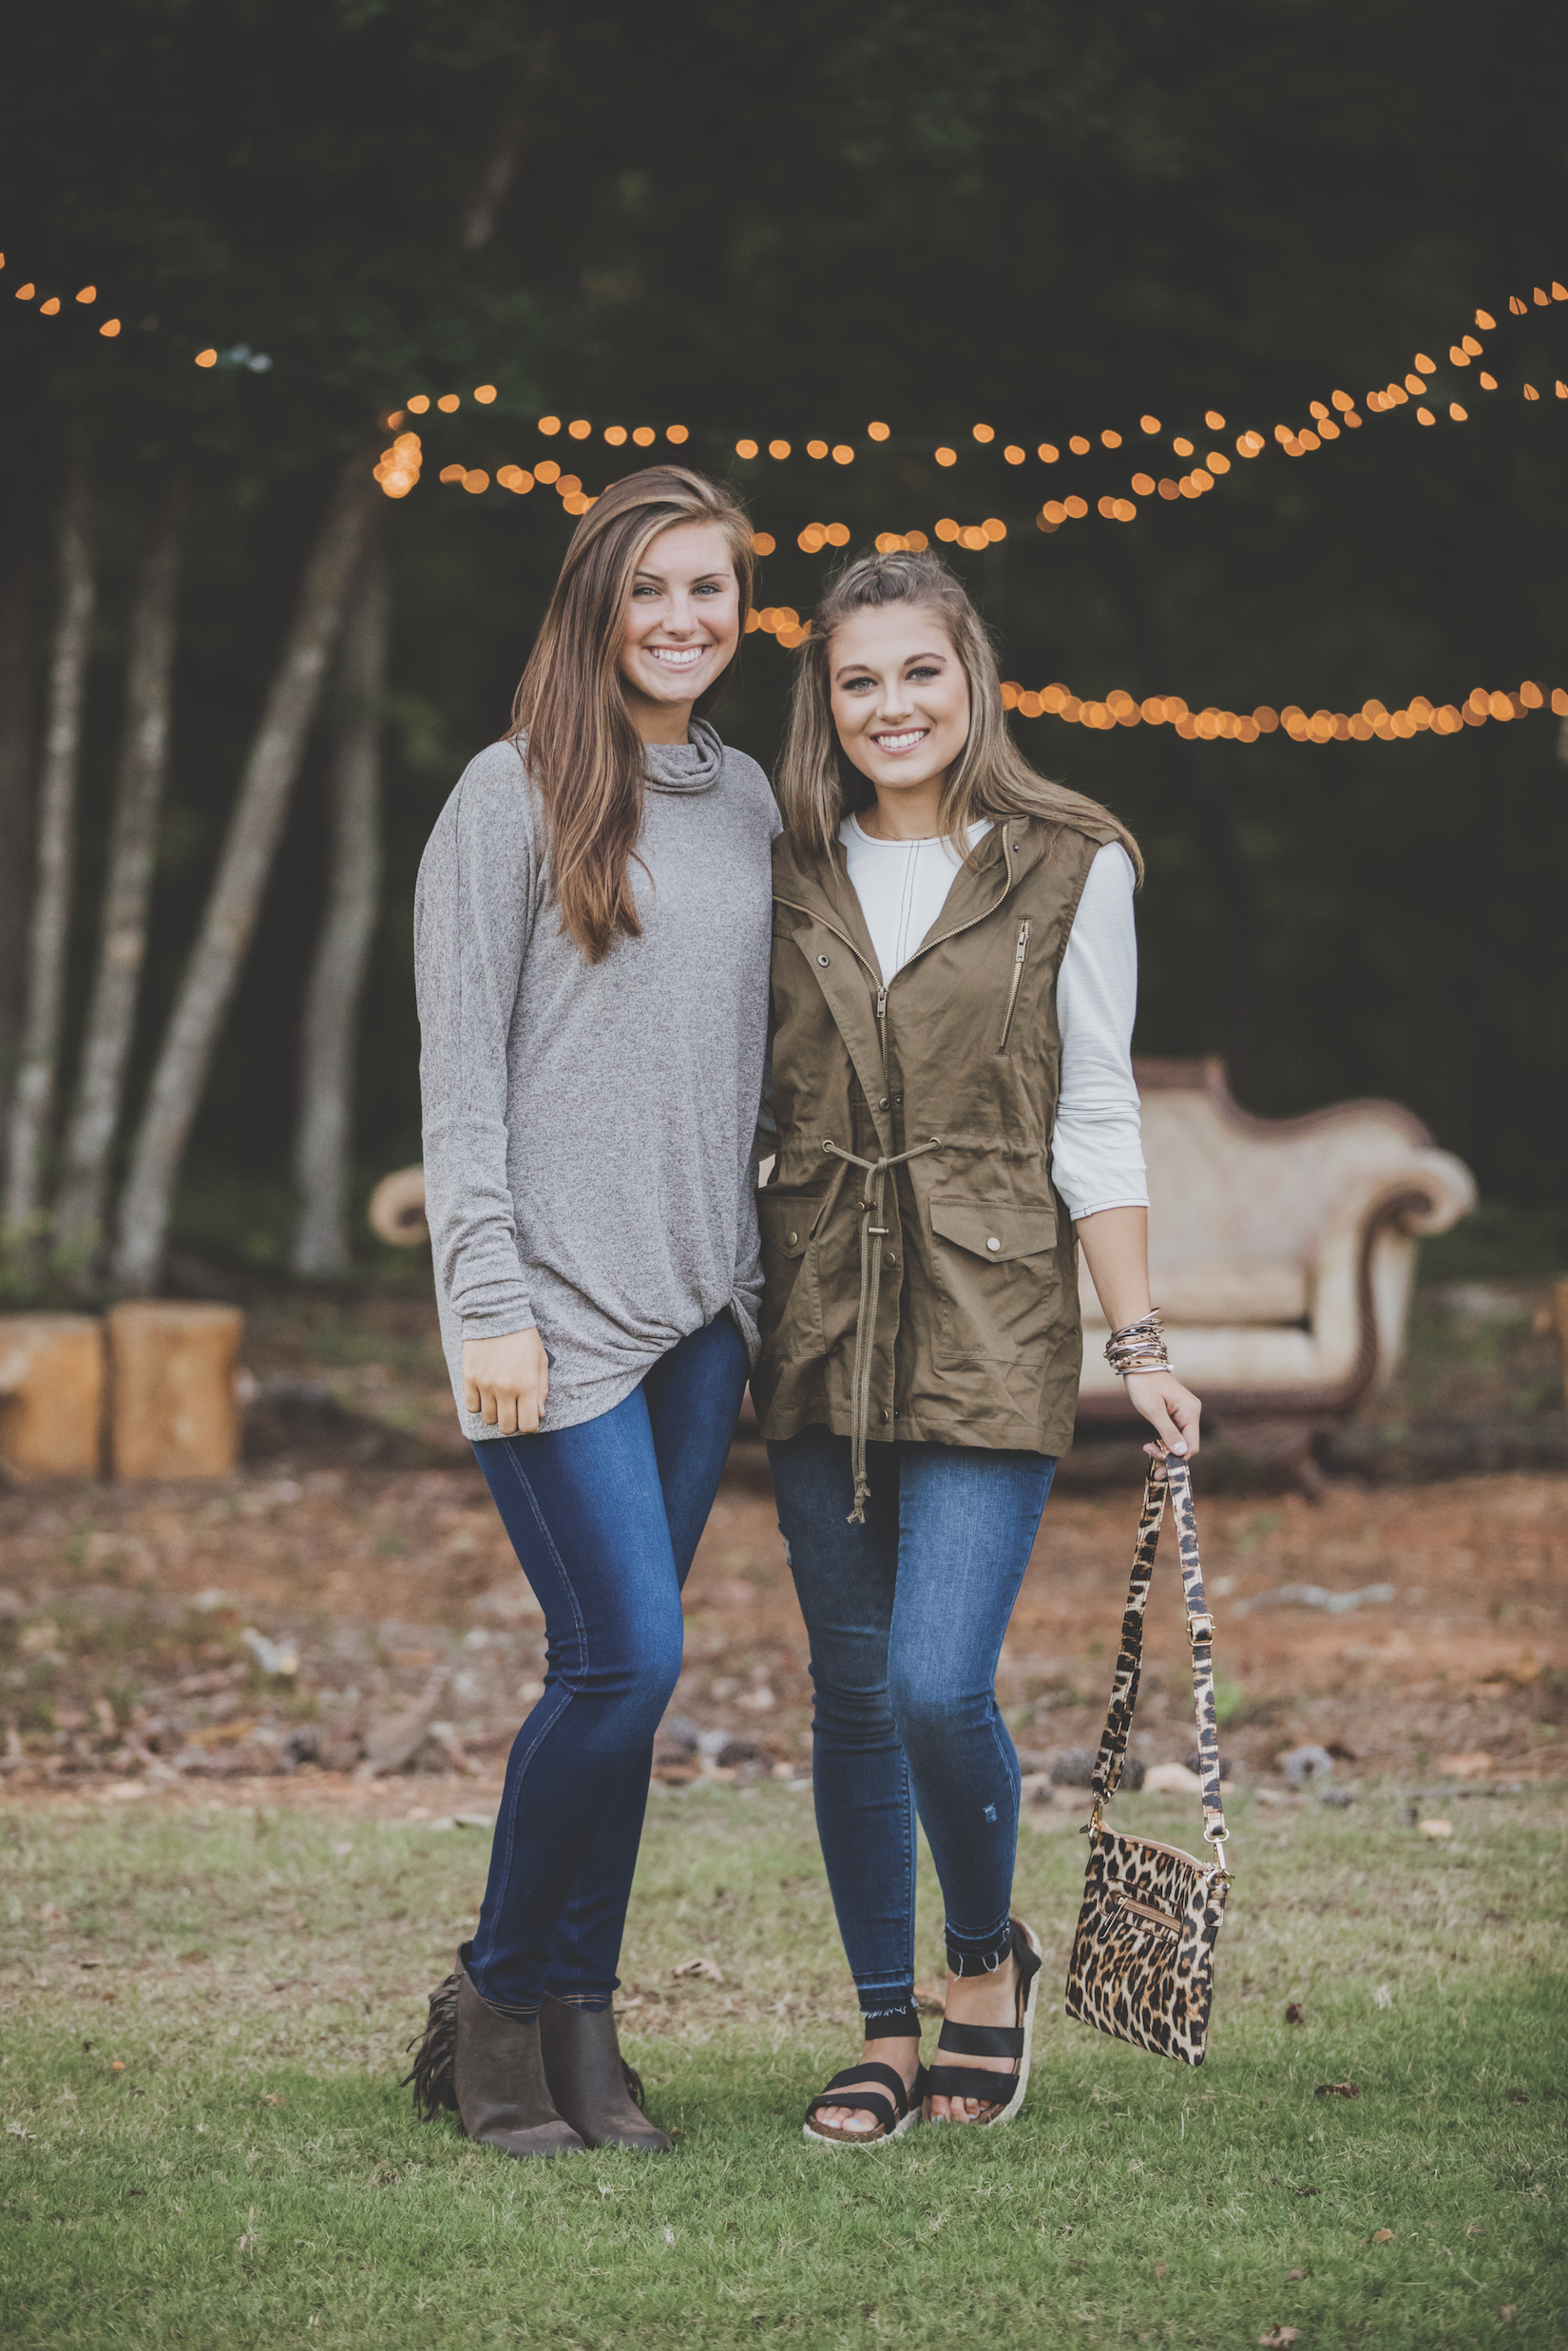 Models Ashley Miller and  Cameron Stutts   Prosperity Home   113 N Main St, Prosperity  Cowl neck sweater and leggings by Simply Southern   Making It Personal   1311 main St, Newberry  Olive button-down vest, leopard and gold stackable bracelet, leopard print purse